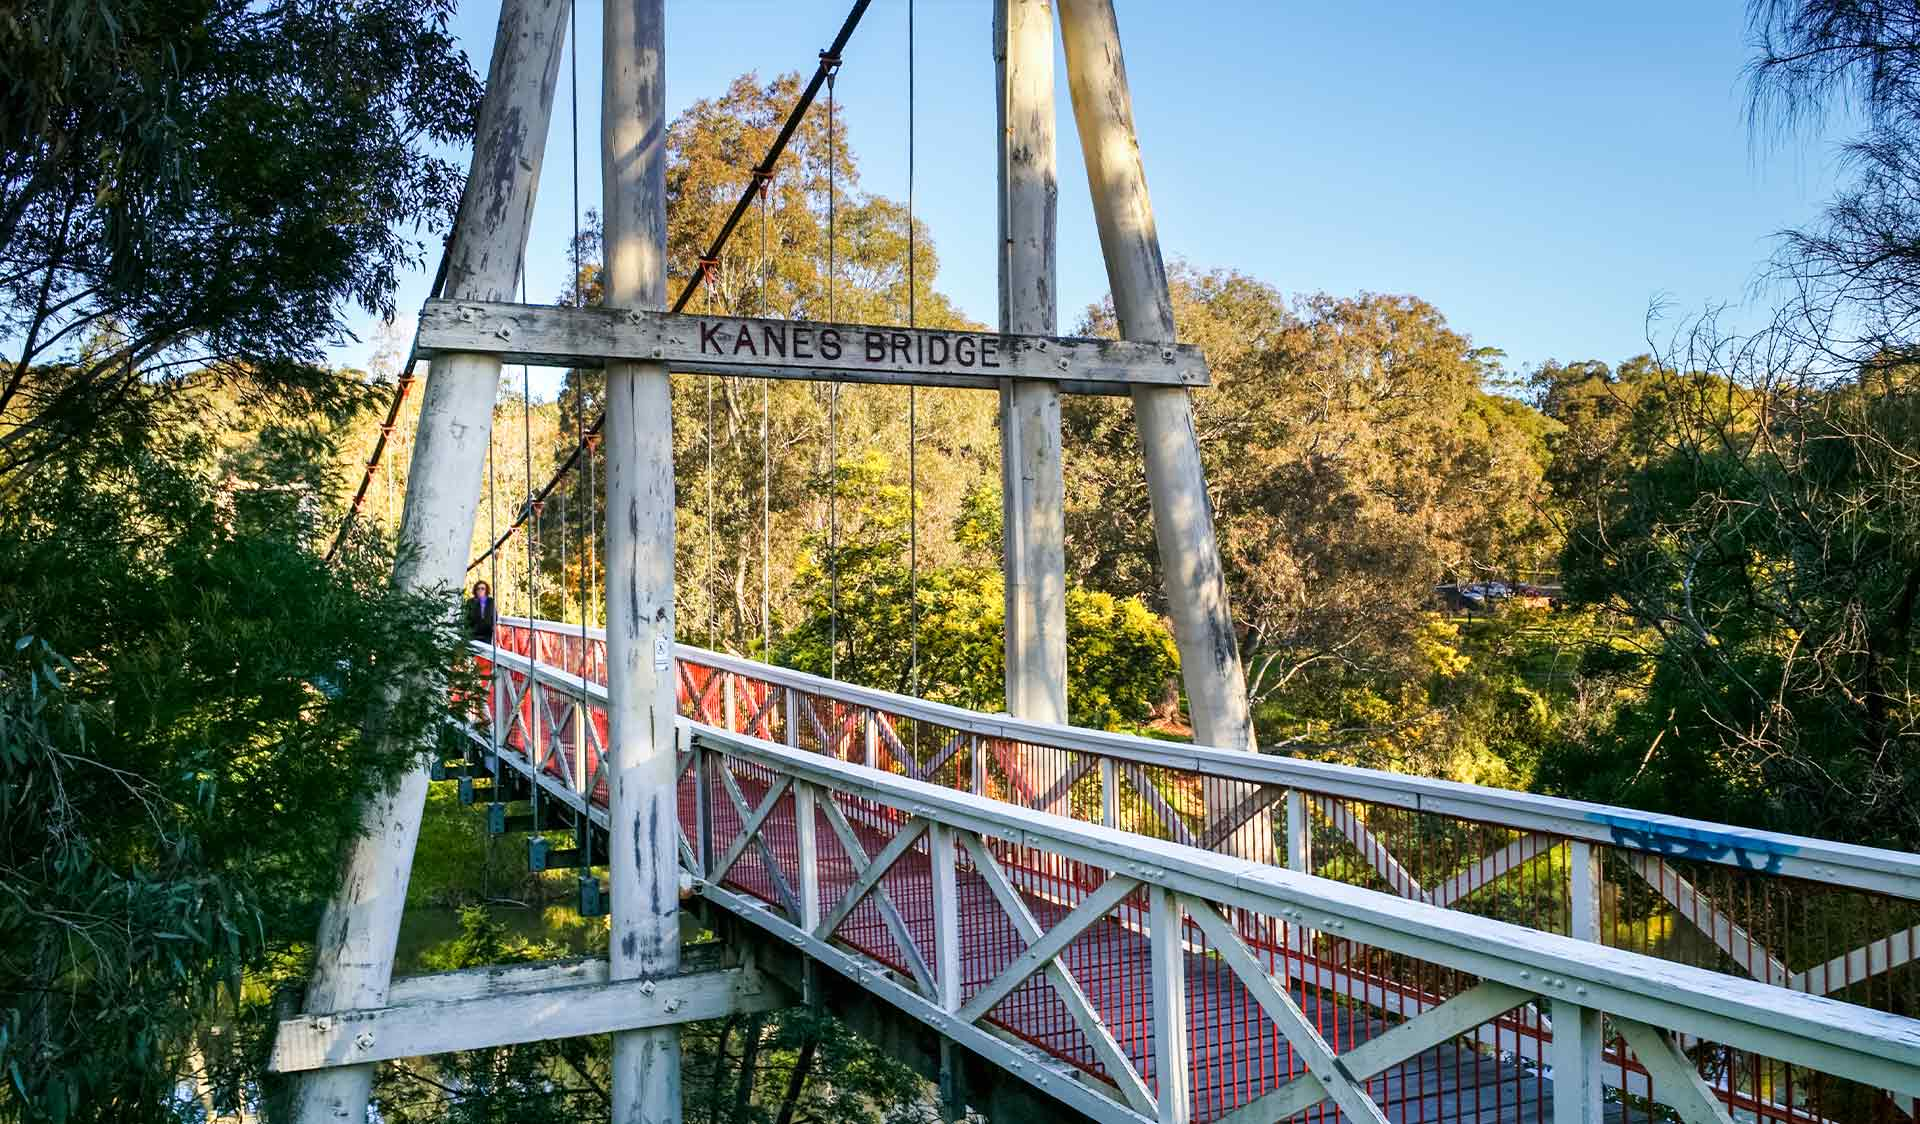 The historic Kanes Bridge at Yarra Bend Park